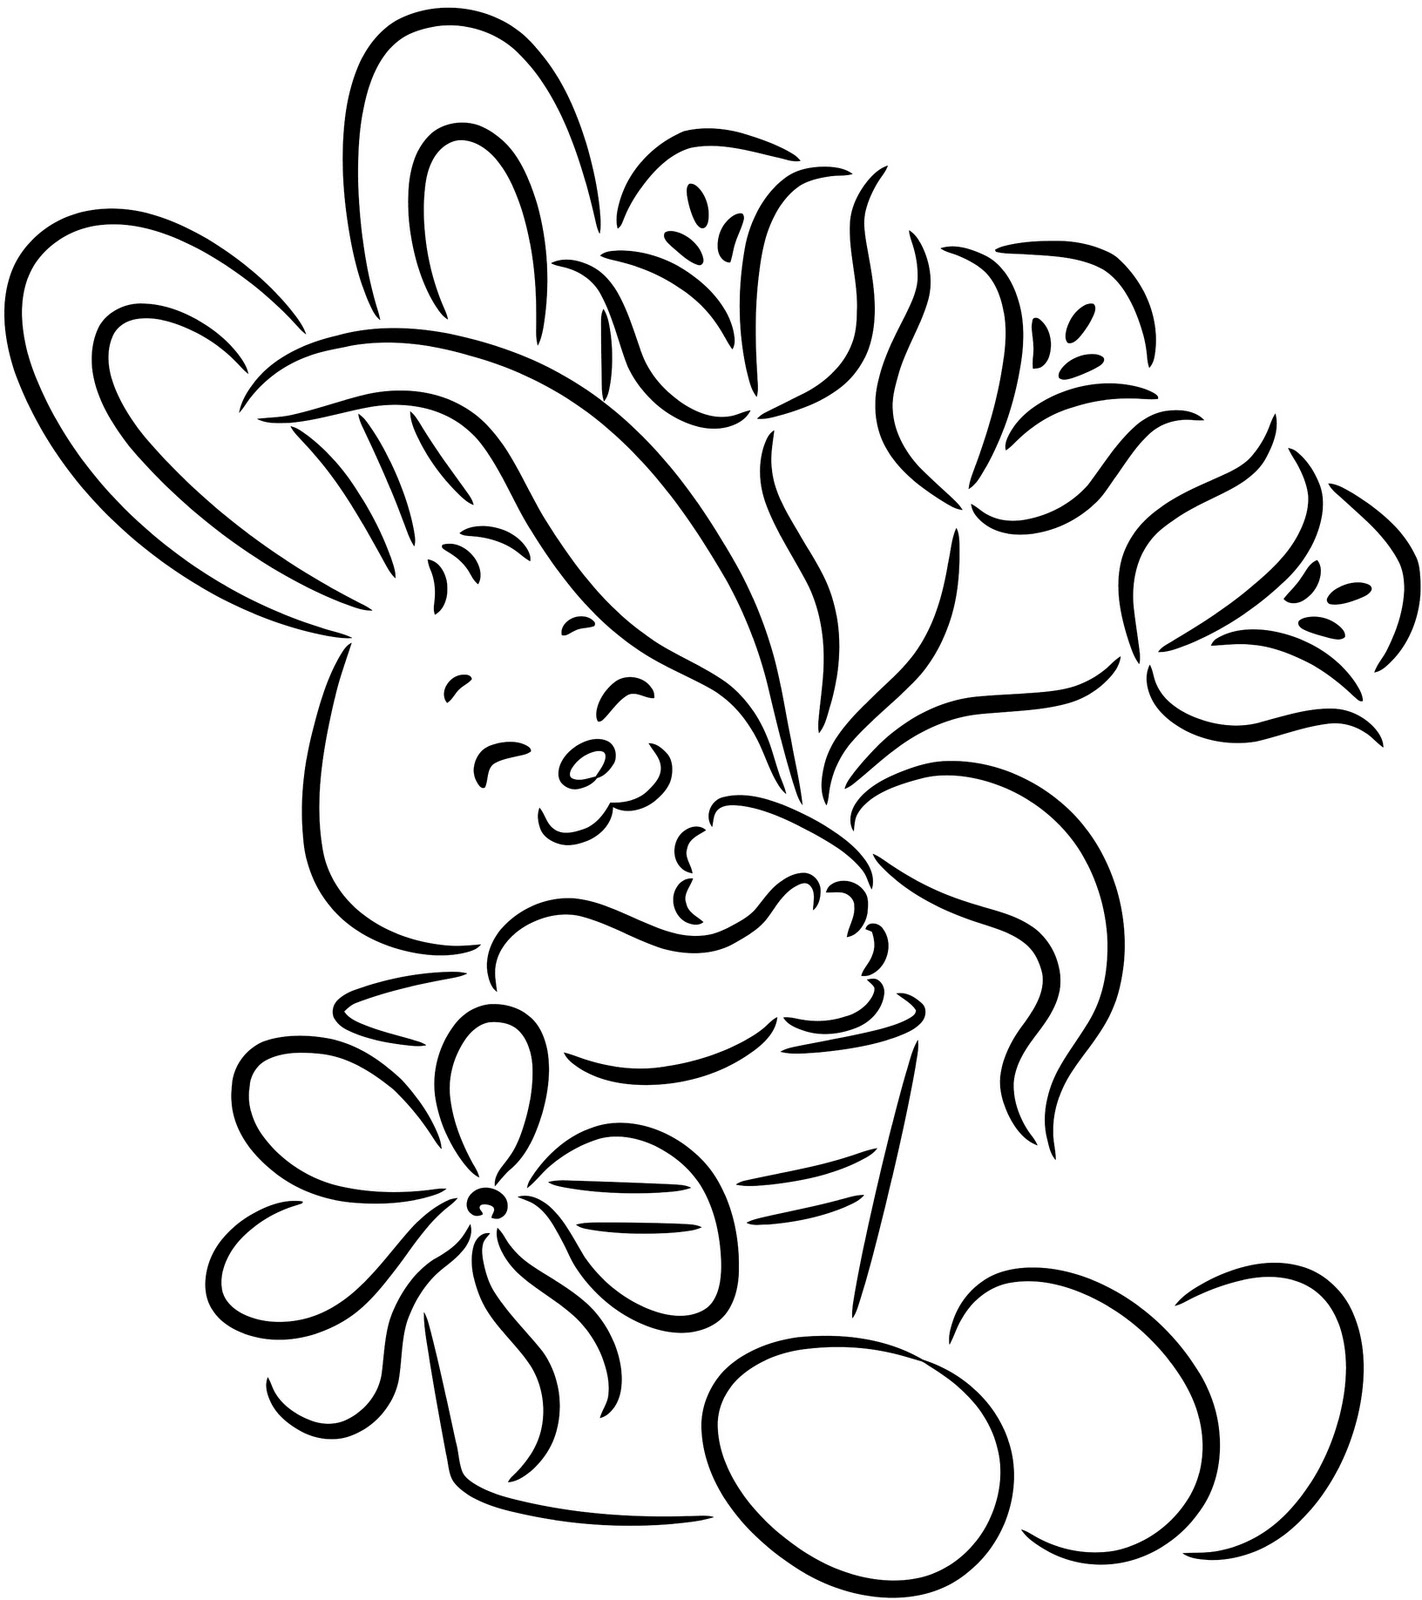 1422x1600 Easter Bunny Coloring Pages Easter Bunny Colouring Pages Bunny